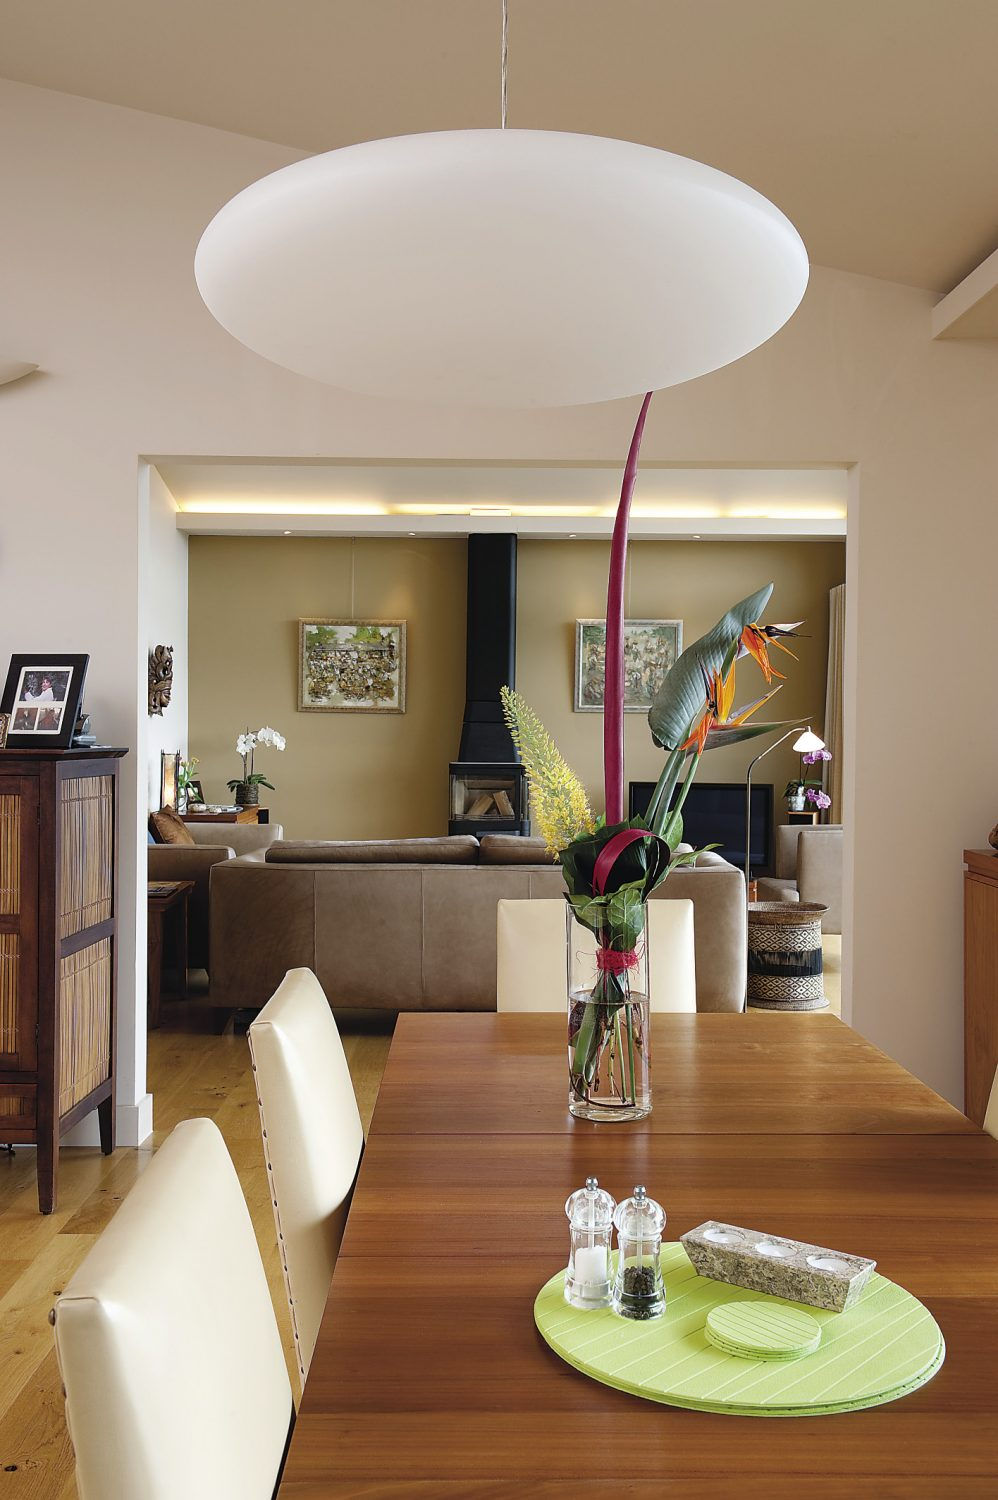 Through the use of clean, simple lines, the kitchen naturally flows into the dining area